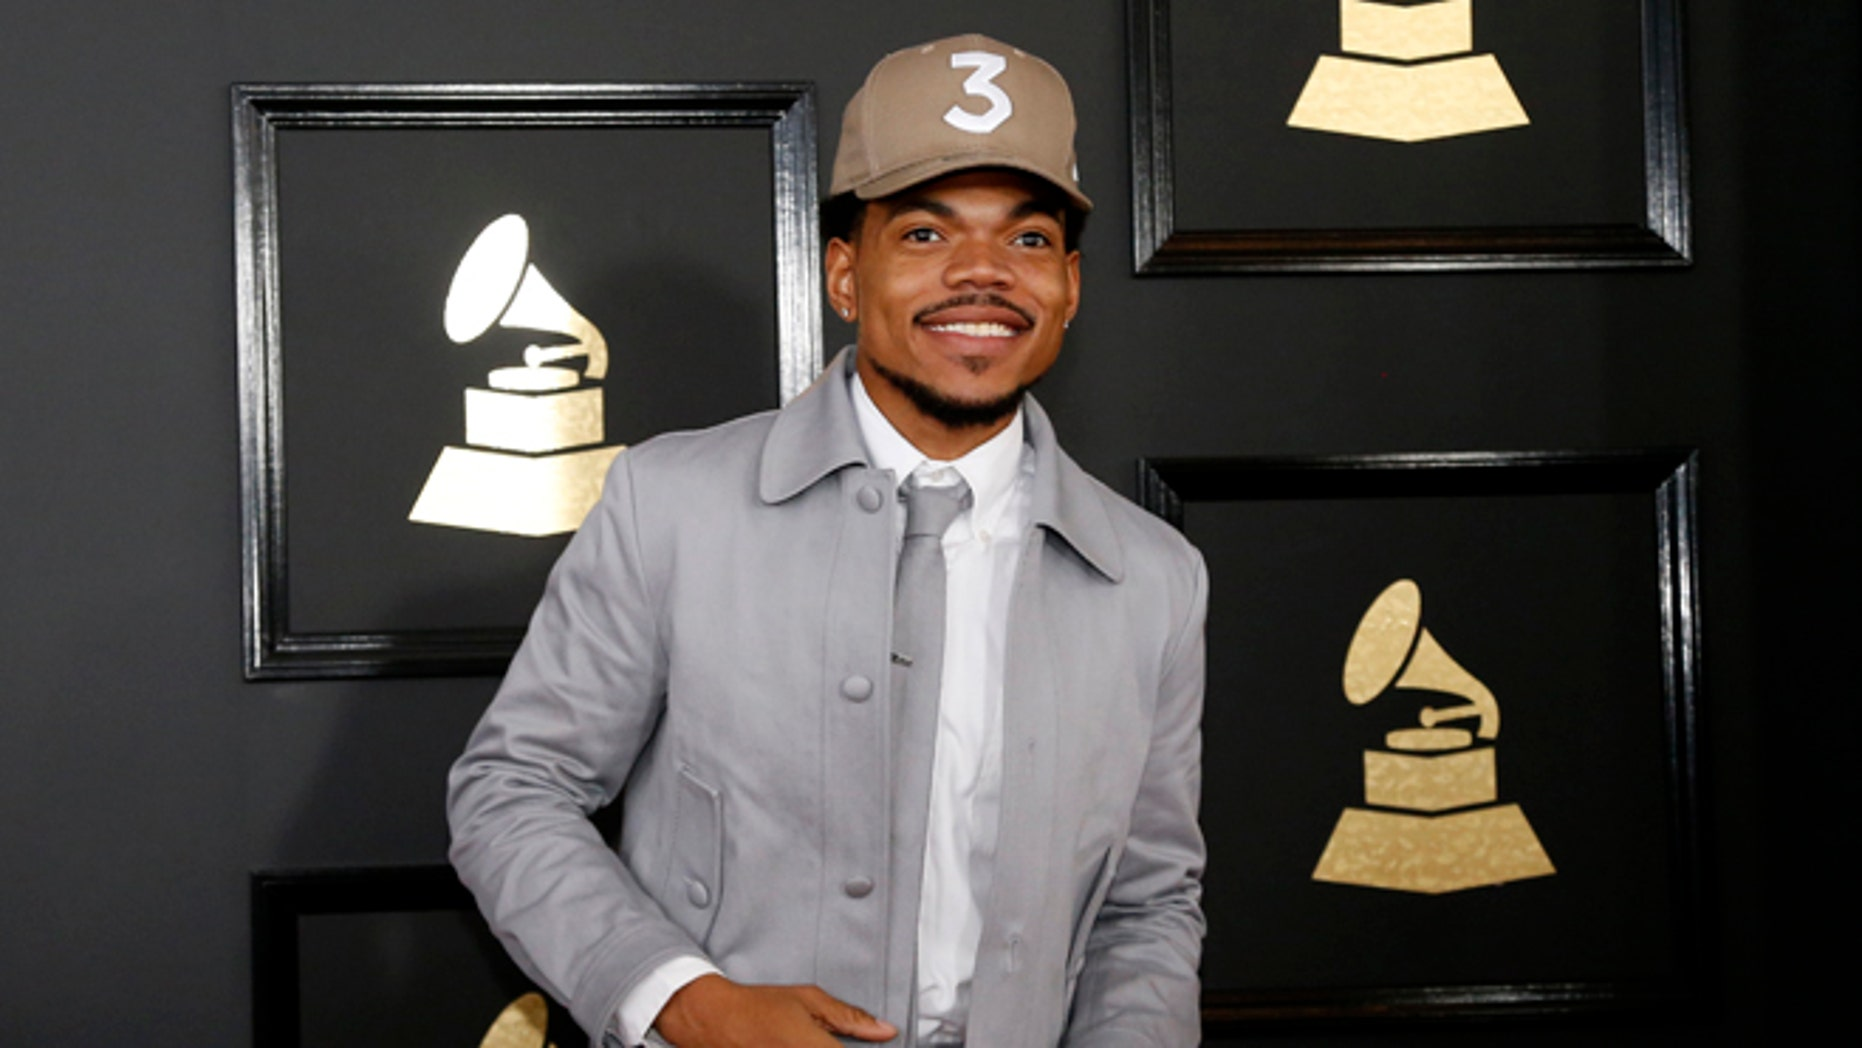 Chance the Rapper continues to raise money for schools in Chicago.